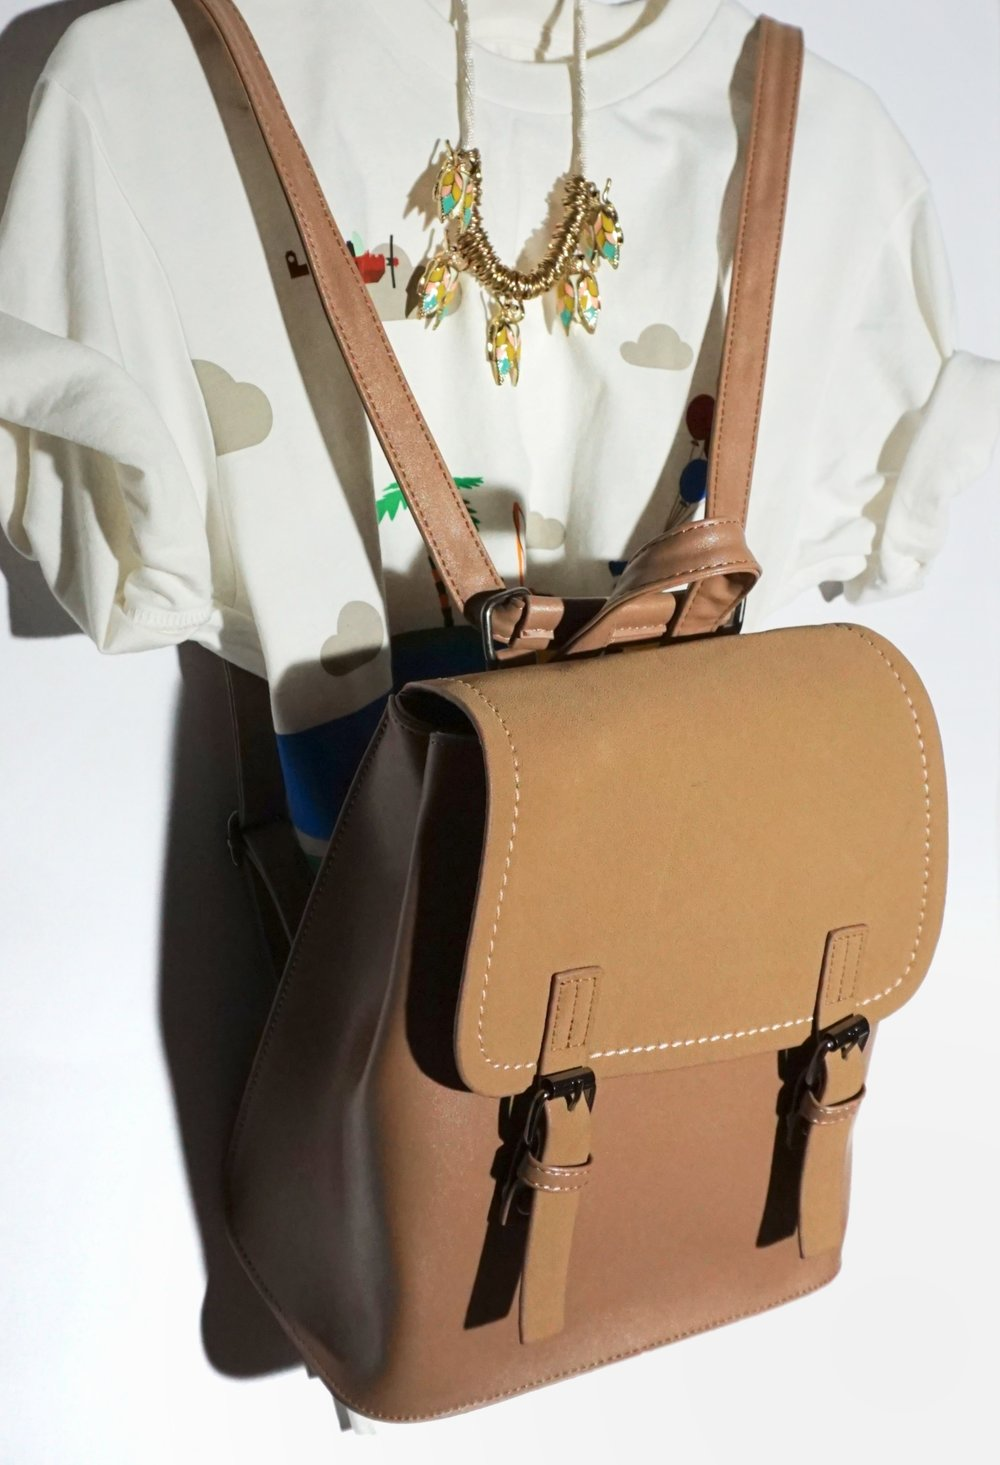 the camel-colored backpack makes me feel positive things. -